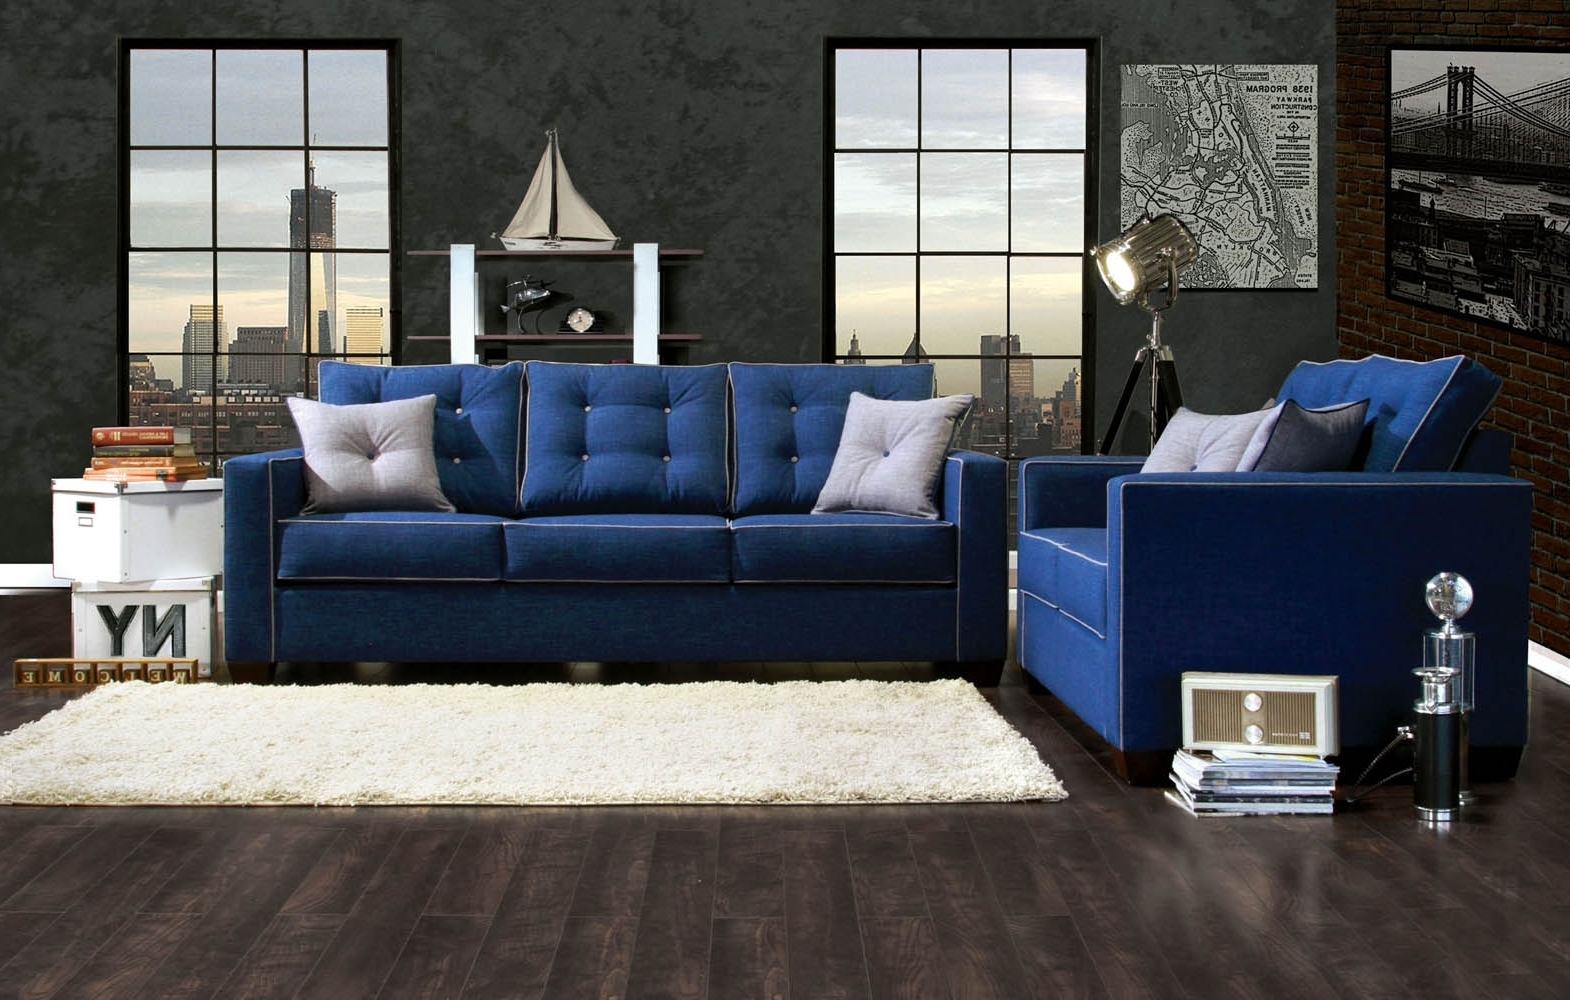 Most Recent Dark Blue Sofas Intended For Blue Sofa Living Room Ideas With Wall Brick Decor And Dark Wooden (View 13 of 20)